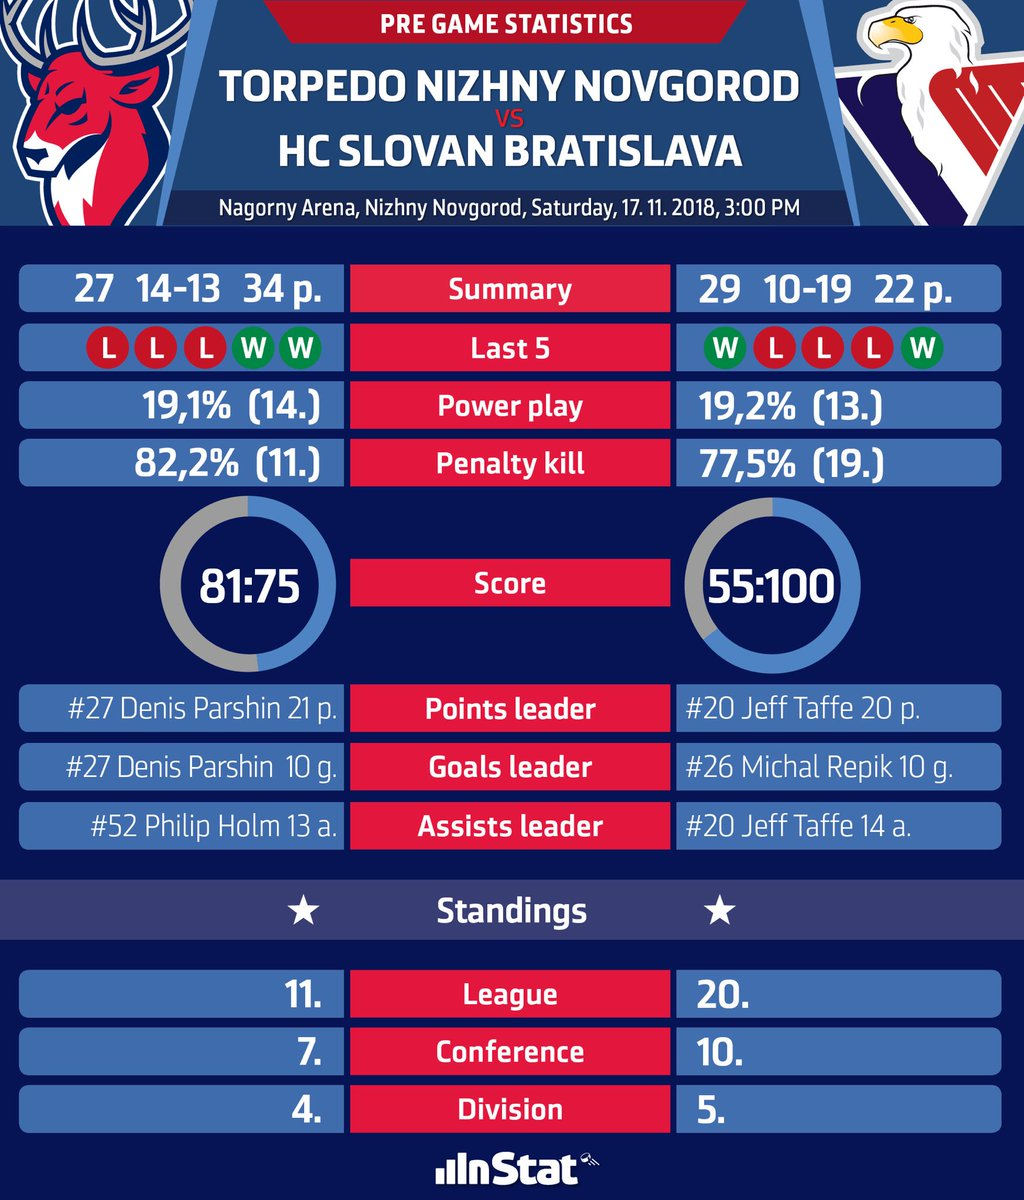 Pregame stats and match up info ⁦@torpedonn⁩ vs #hcslovan. Face off time today 3:00 pm CET @khl #vernislovanu https://t.co/AbGLx16YOD